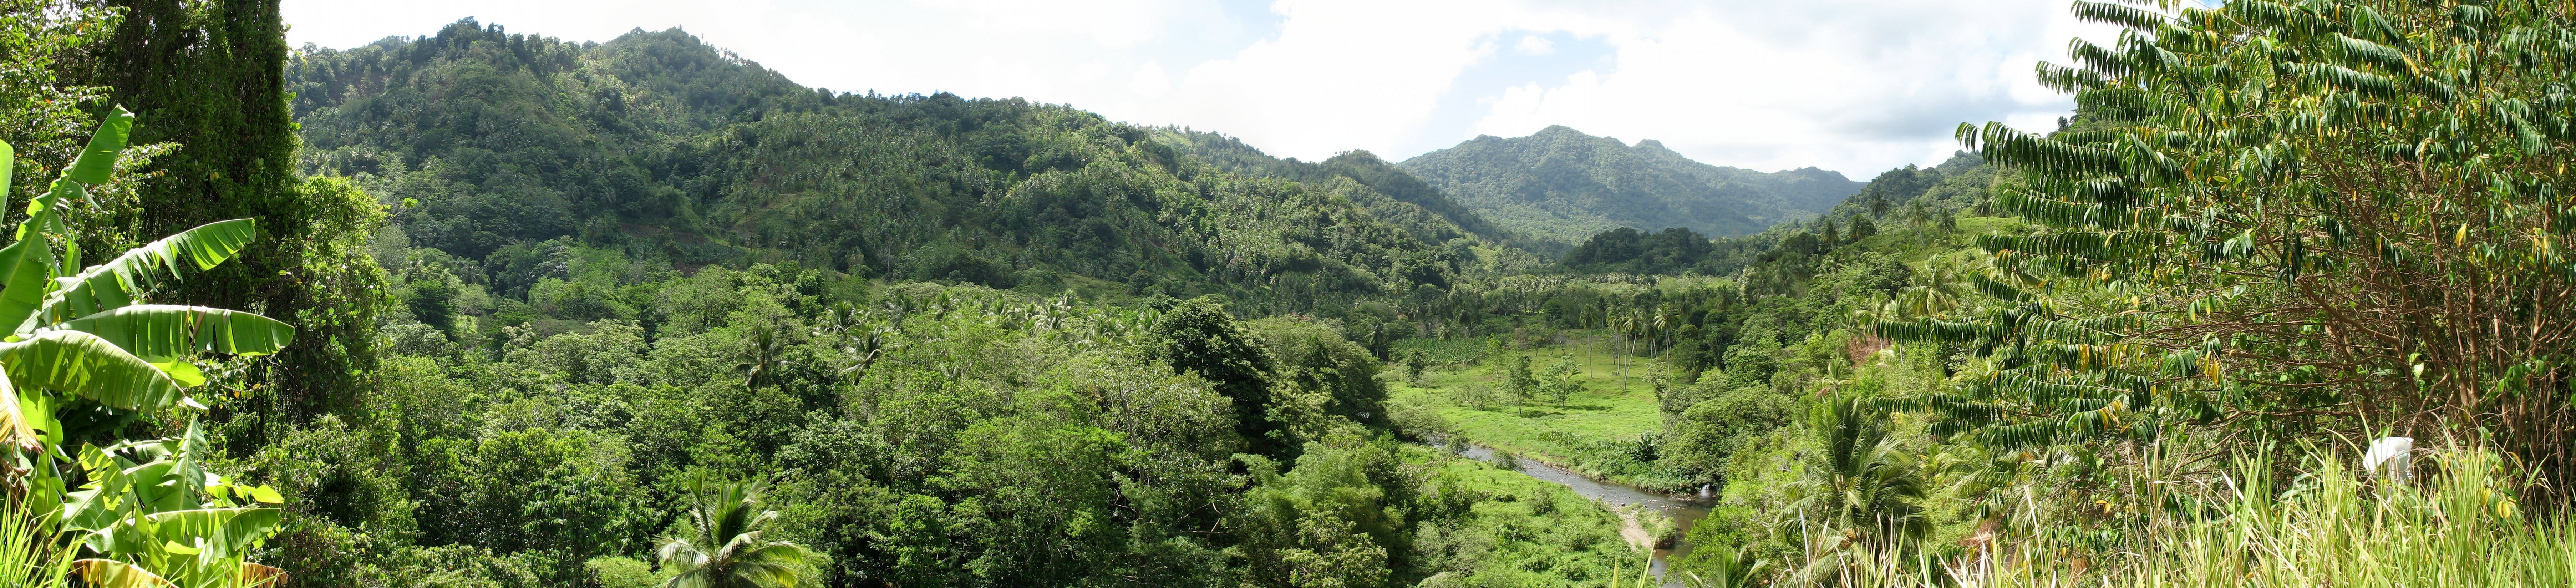 essay on tropical forest archaeology in western pichincha ecu Essay sasrutha sinhala essays in law our background and circumstances essays essay about teacher professional goals essay on tropical forest archaeology in.